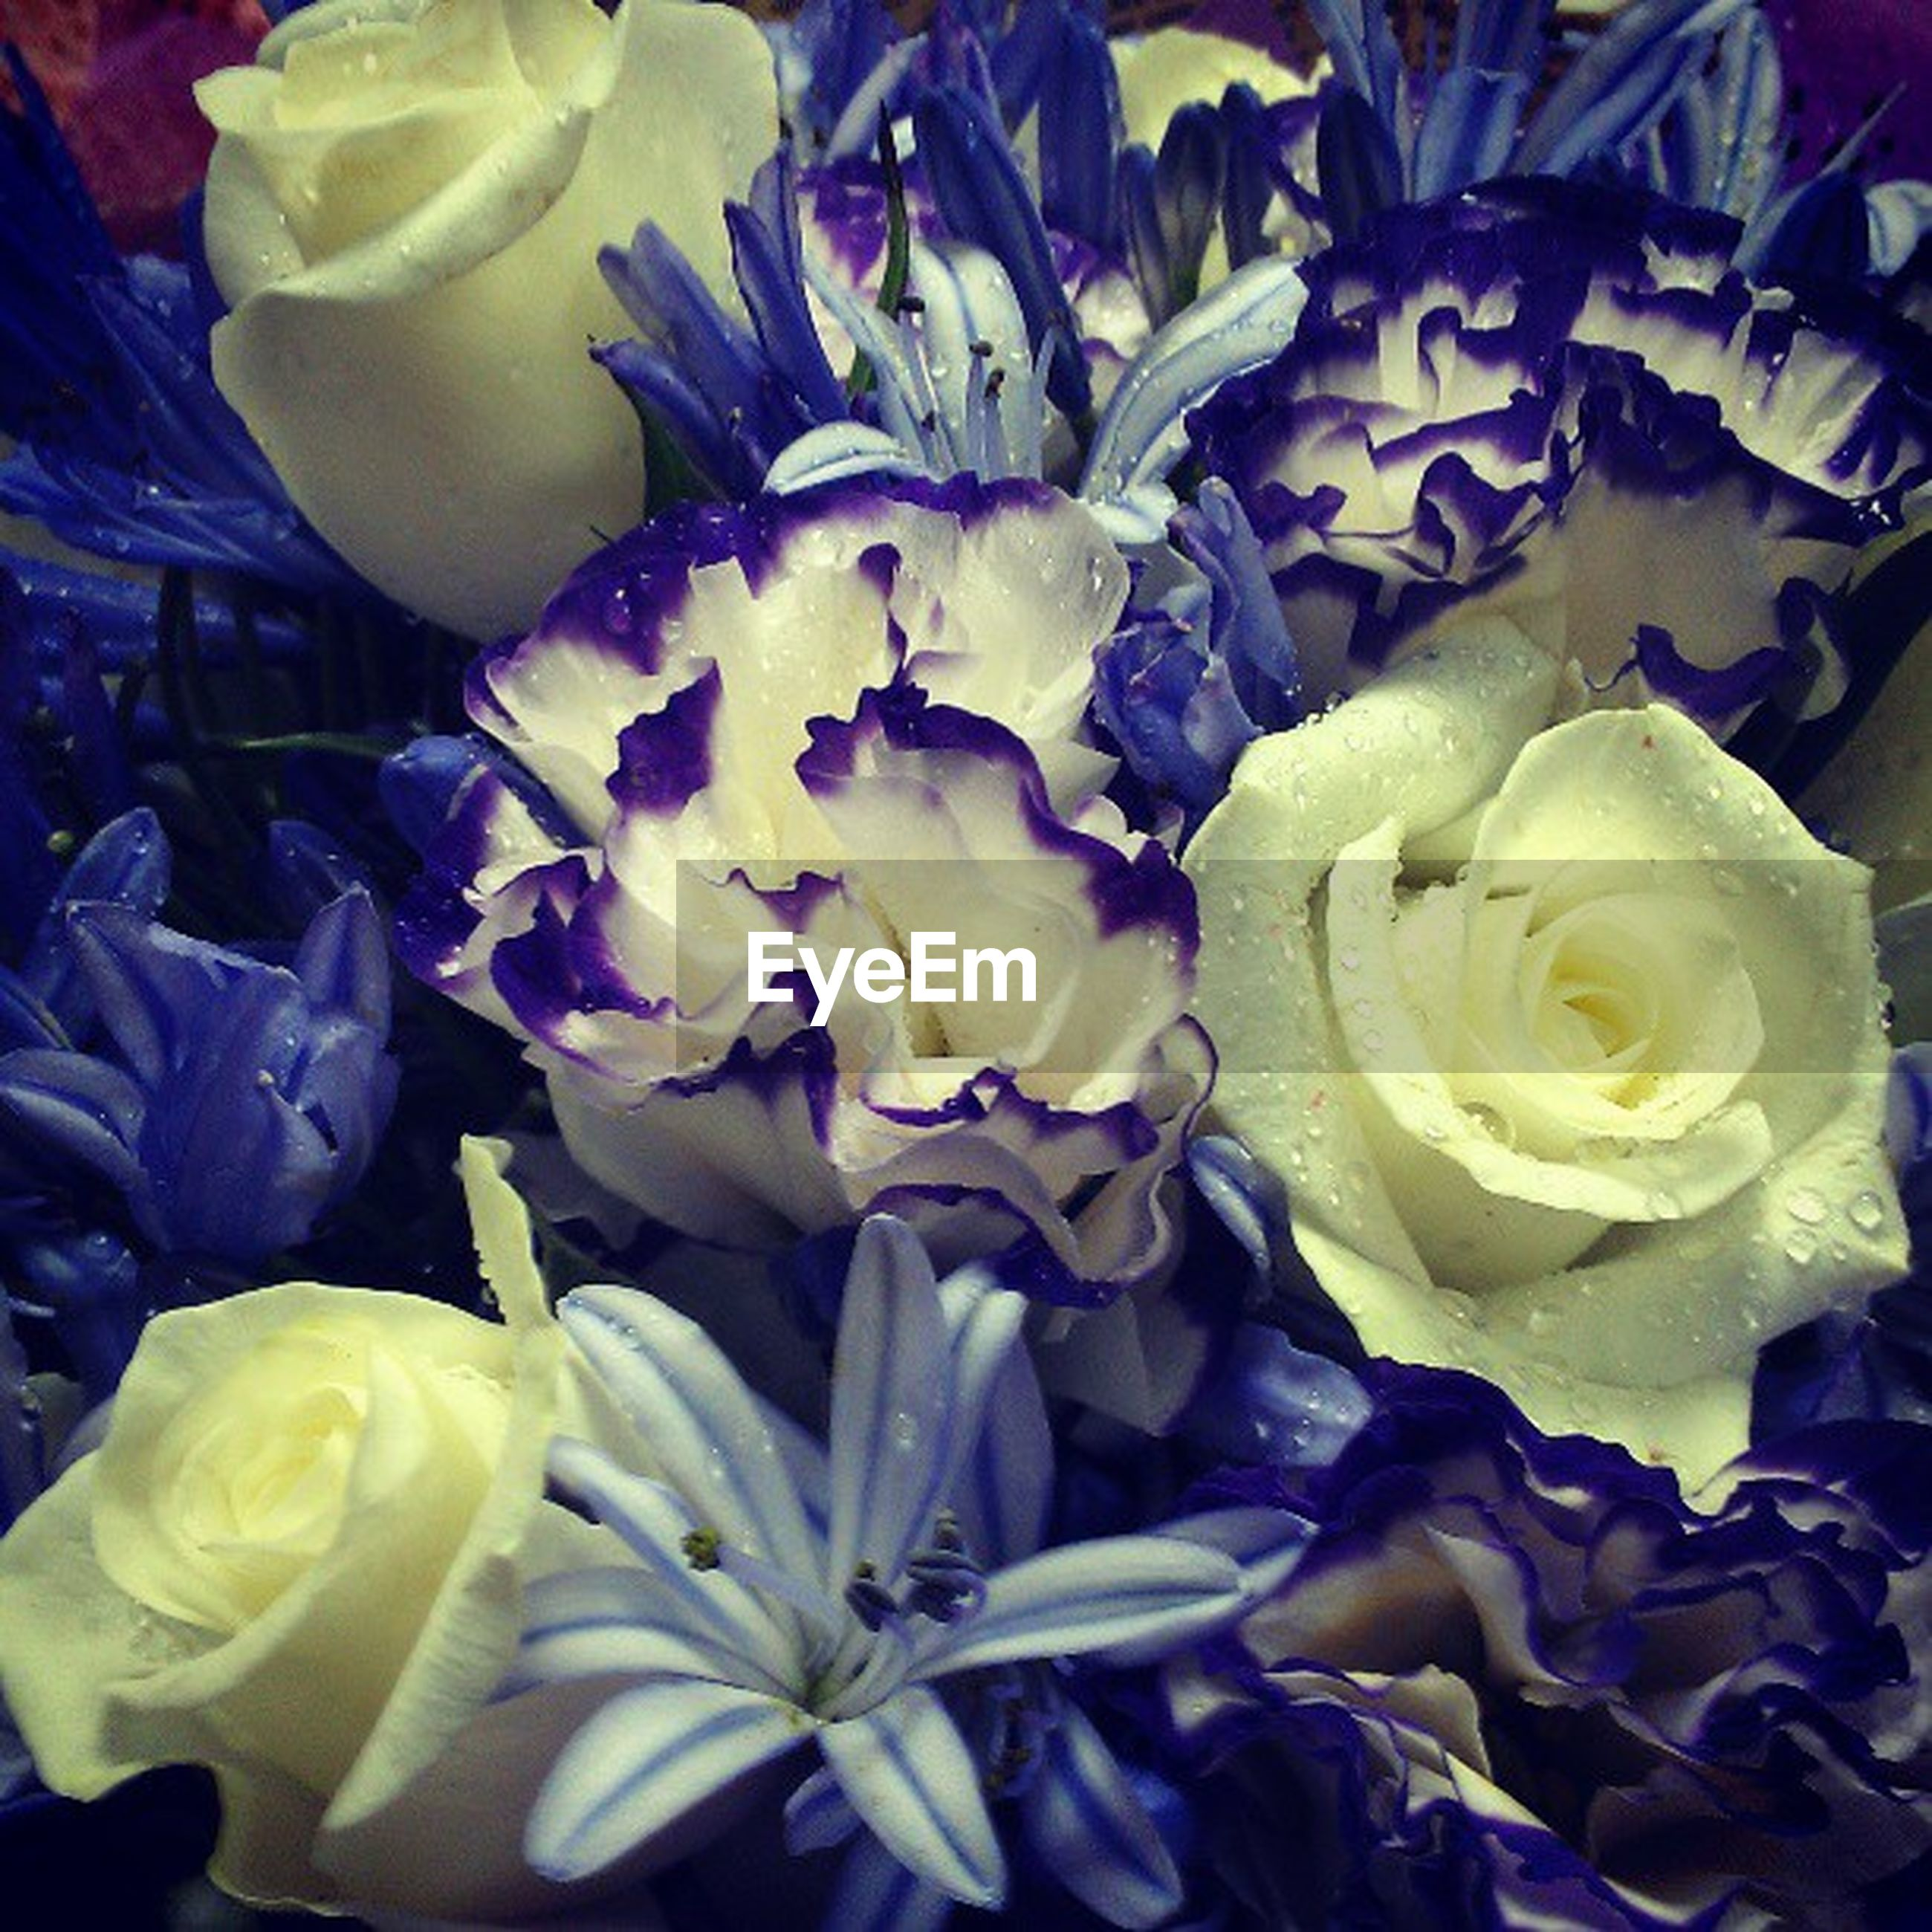 flower, freshness, petal, flower head, fragility, beauty in nature, indoors, rose - flower, high angle view, close-up, full frame, nature, backgrounds, yellow, growth, blooming, plant, no people, bouquet, bunch of flowers